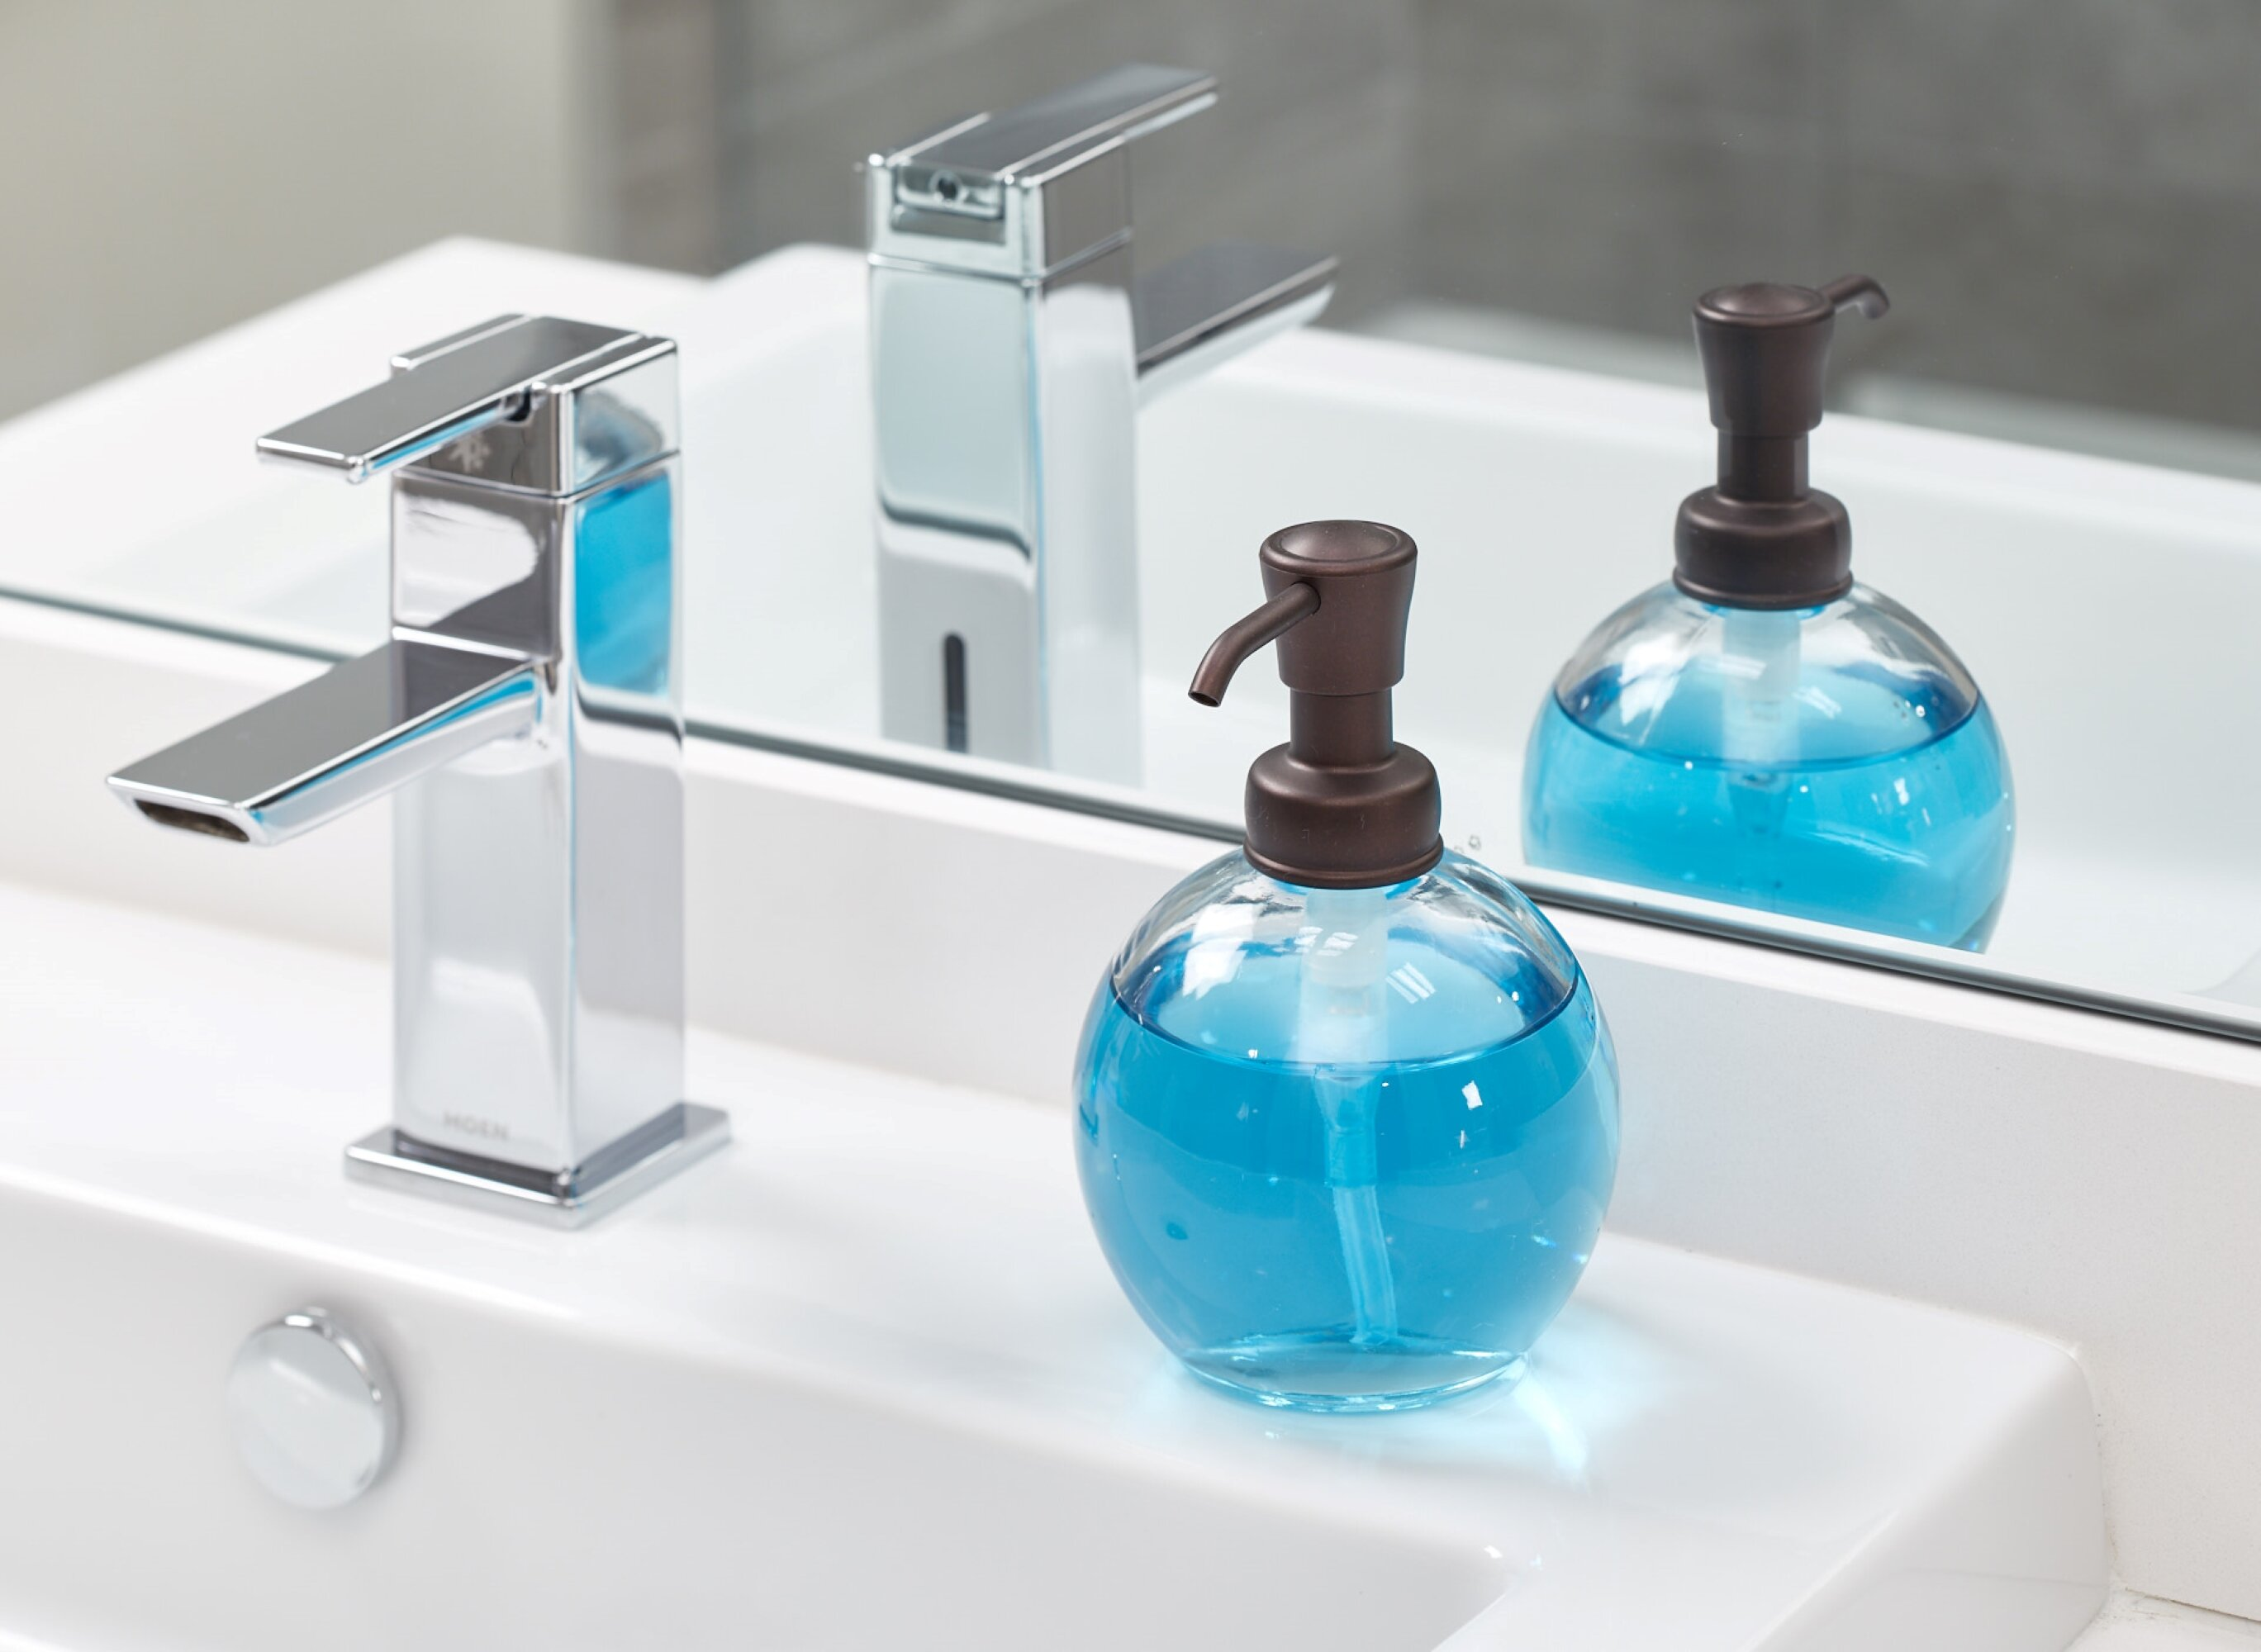 Together is Our Favorite 16 oz Glass Soap Dispenser